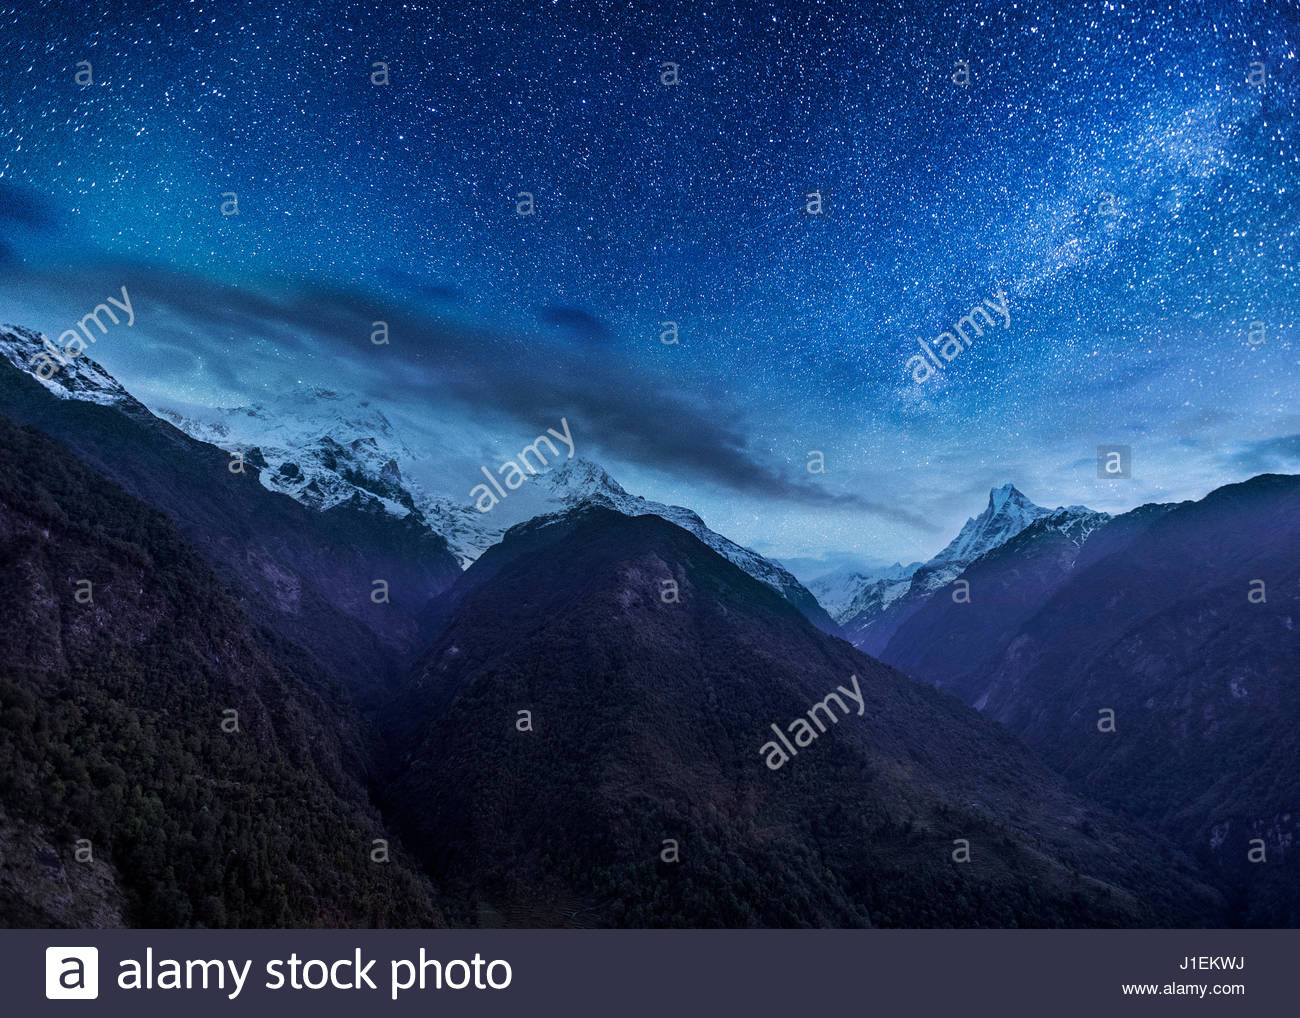 The milky way shines above the hills and valleys of Nepal's Annapurna region. - Stock Image